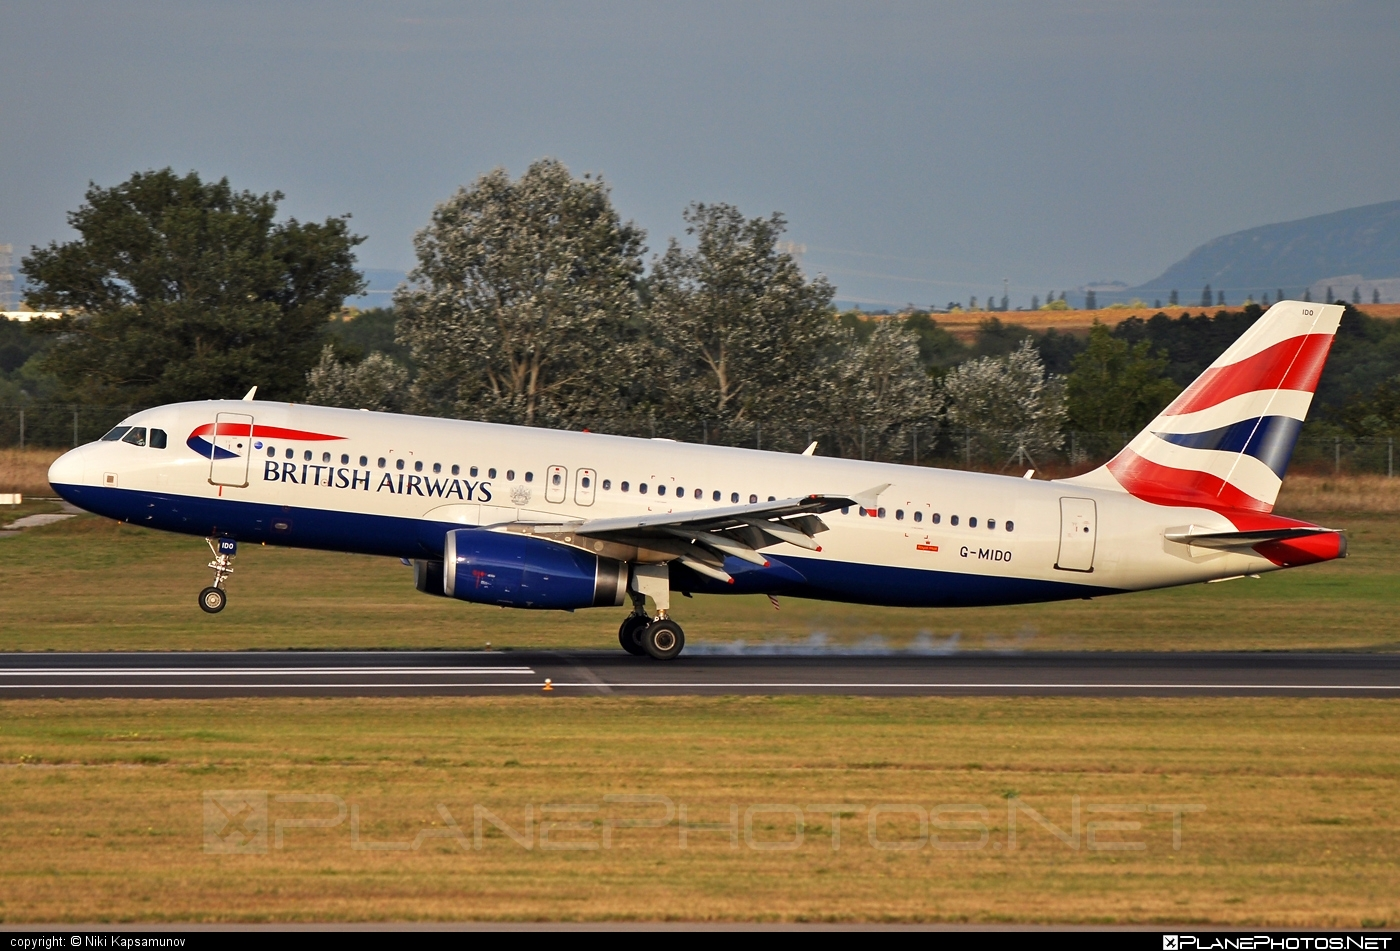 Airbus A320-232 - G-MIDO operated by British Airways #a320 #a320family #airbus #airbus320 #britishairways